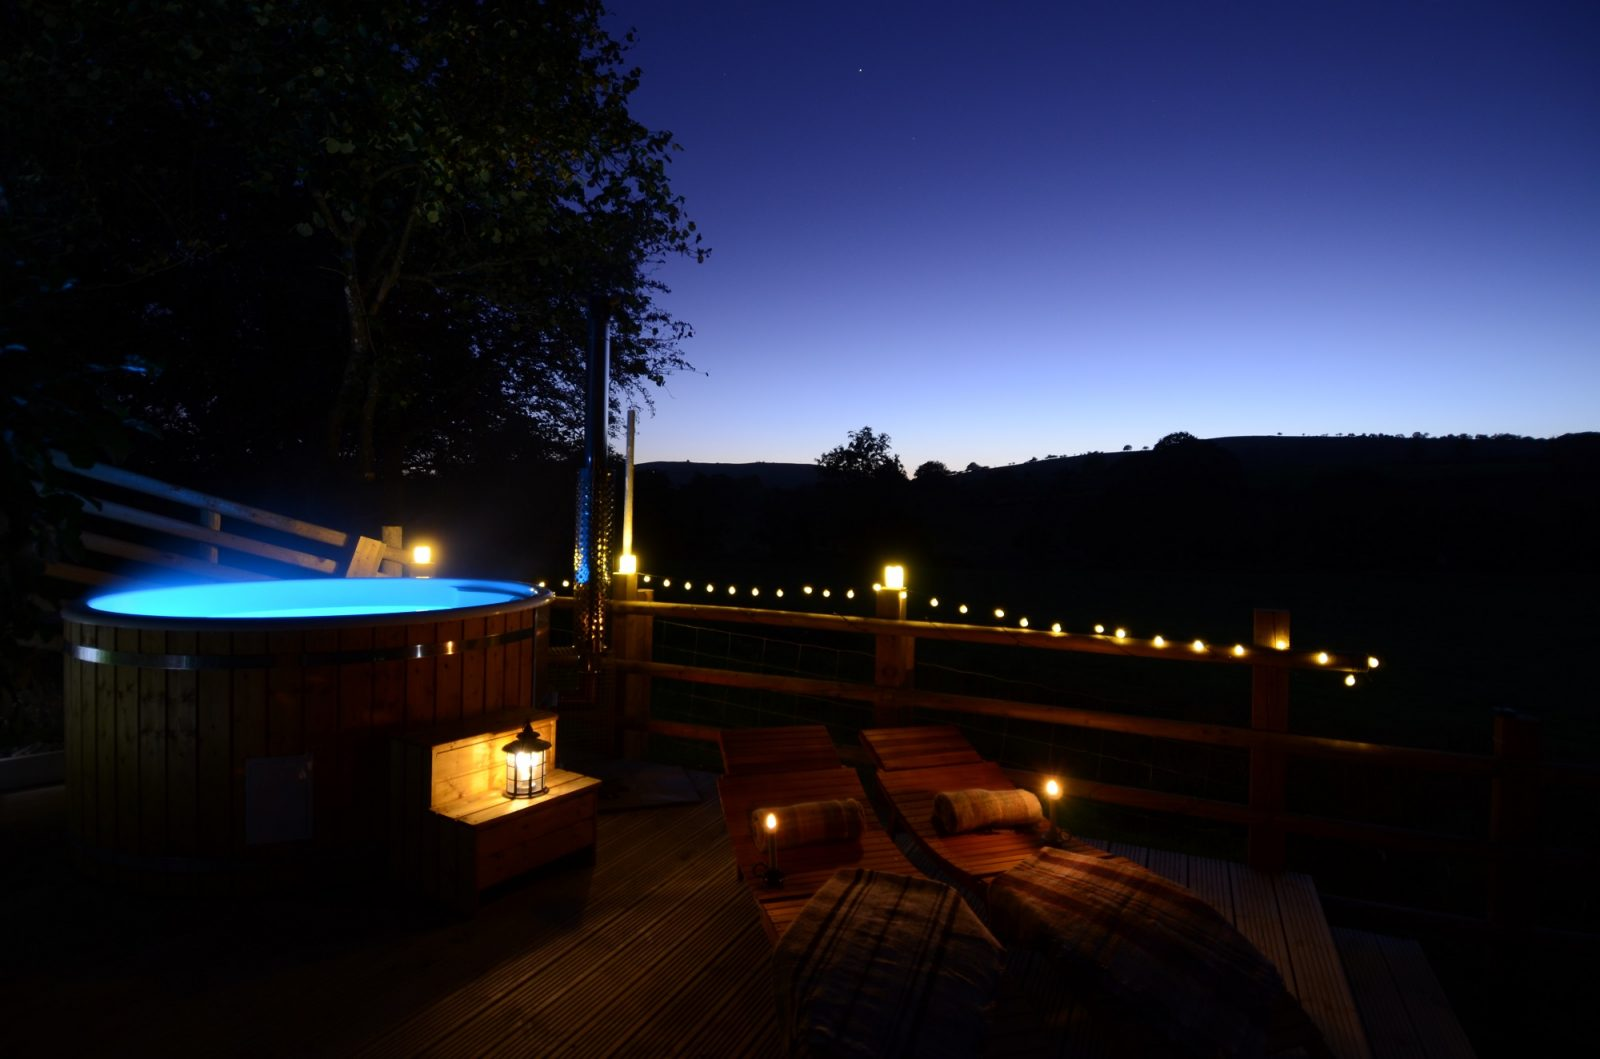 hot tub holiday under the stars